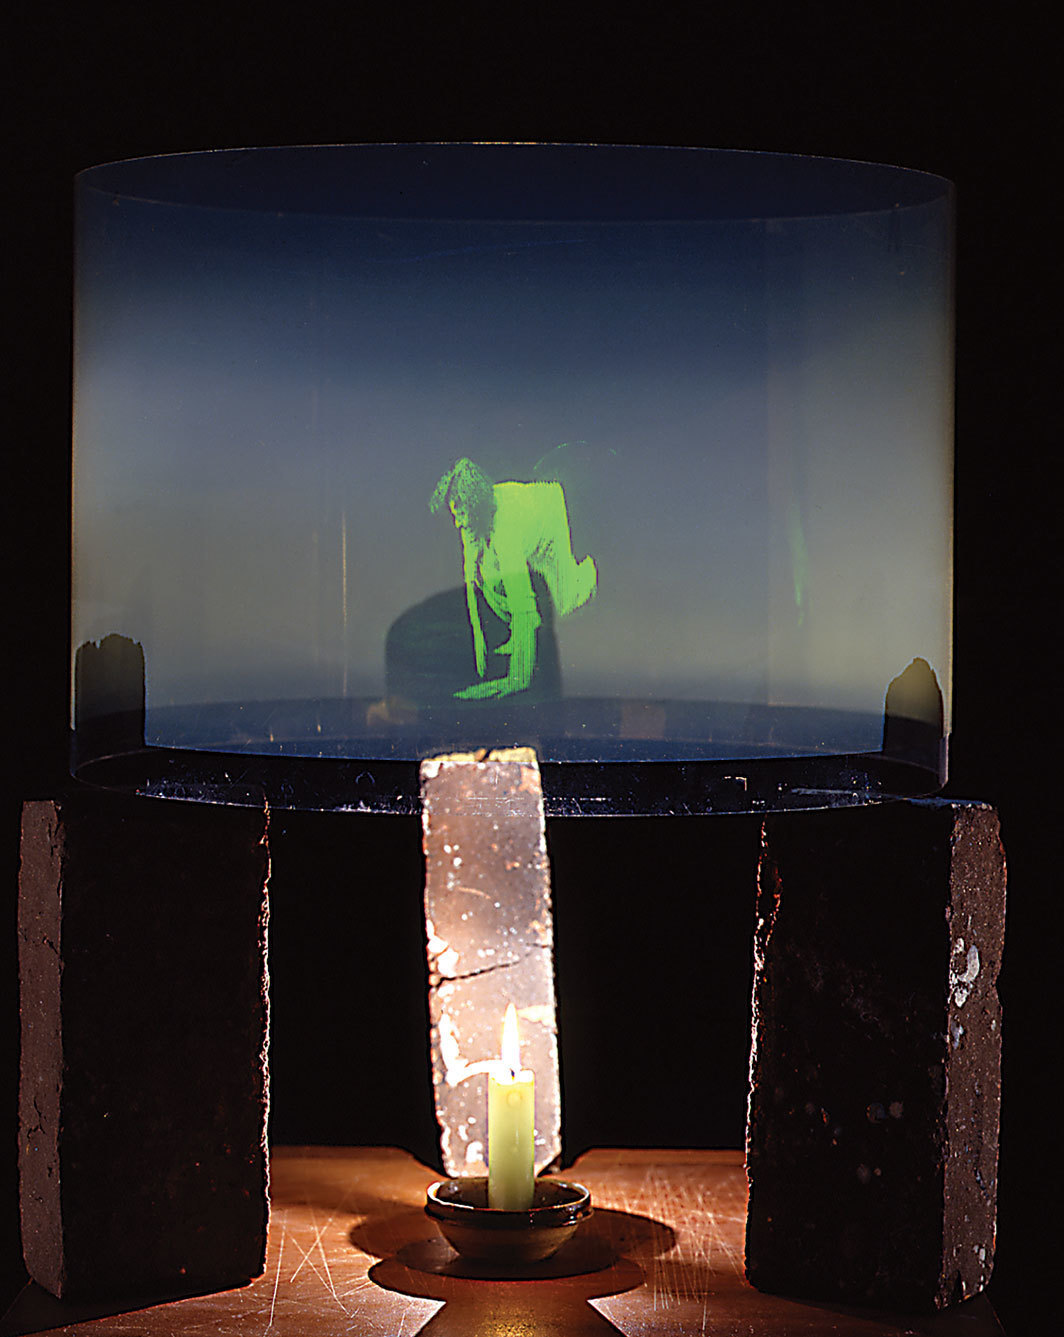 "Simone Forti, Striding Crawling, 1977, holographic film, Plexiglas, polymer protective covering, candle, candle dish, bricks, 25 × 18 × 18""."